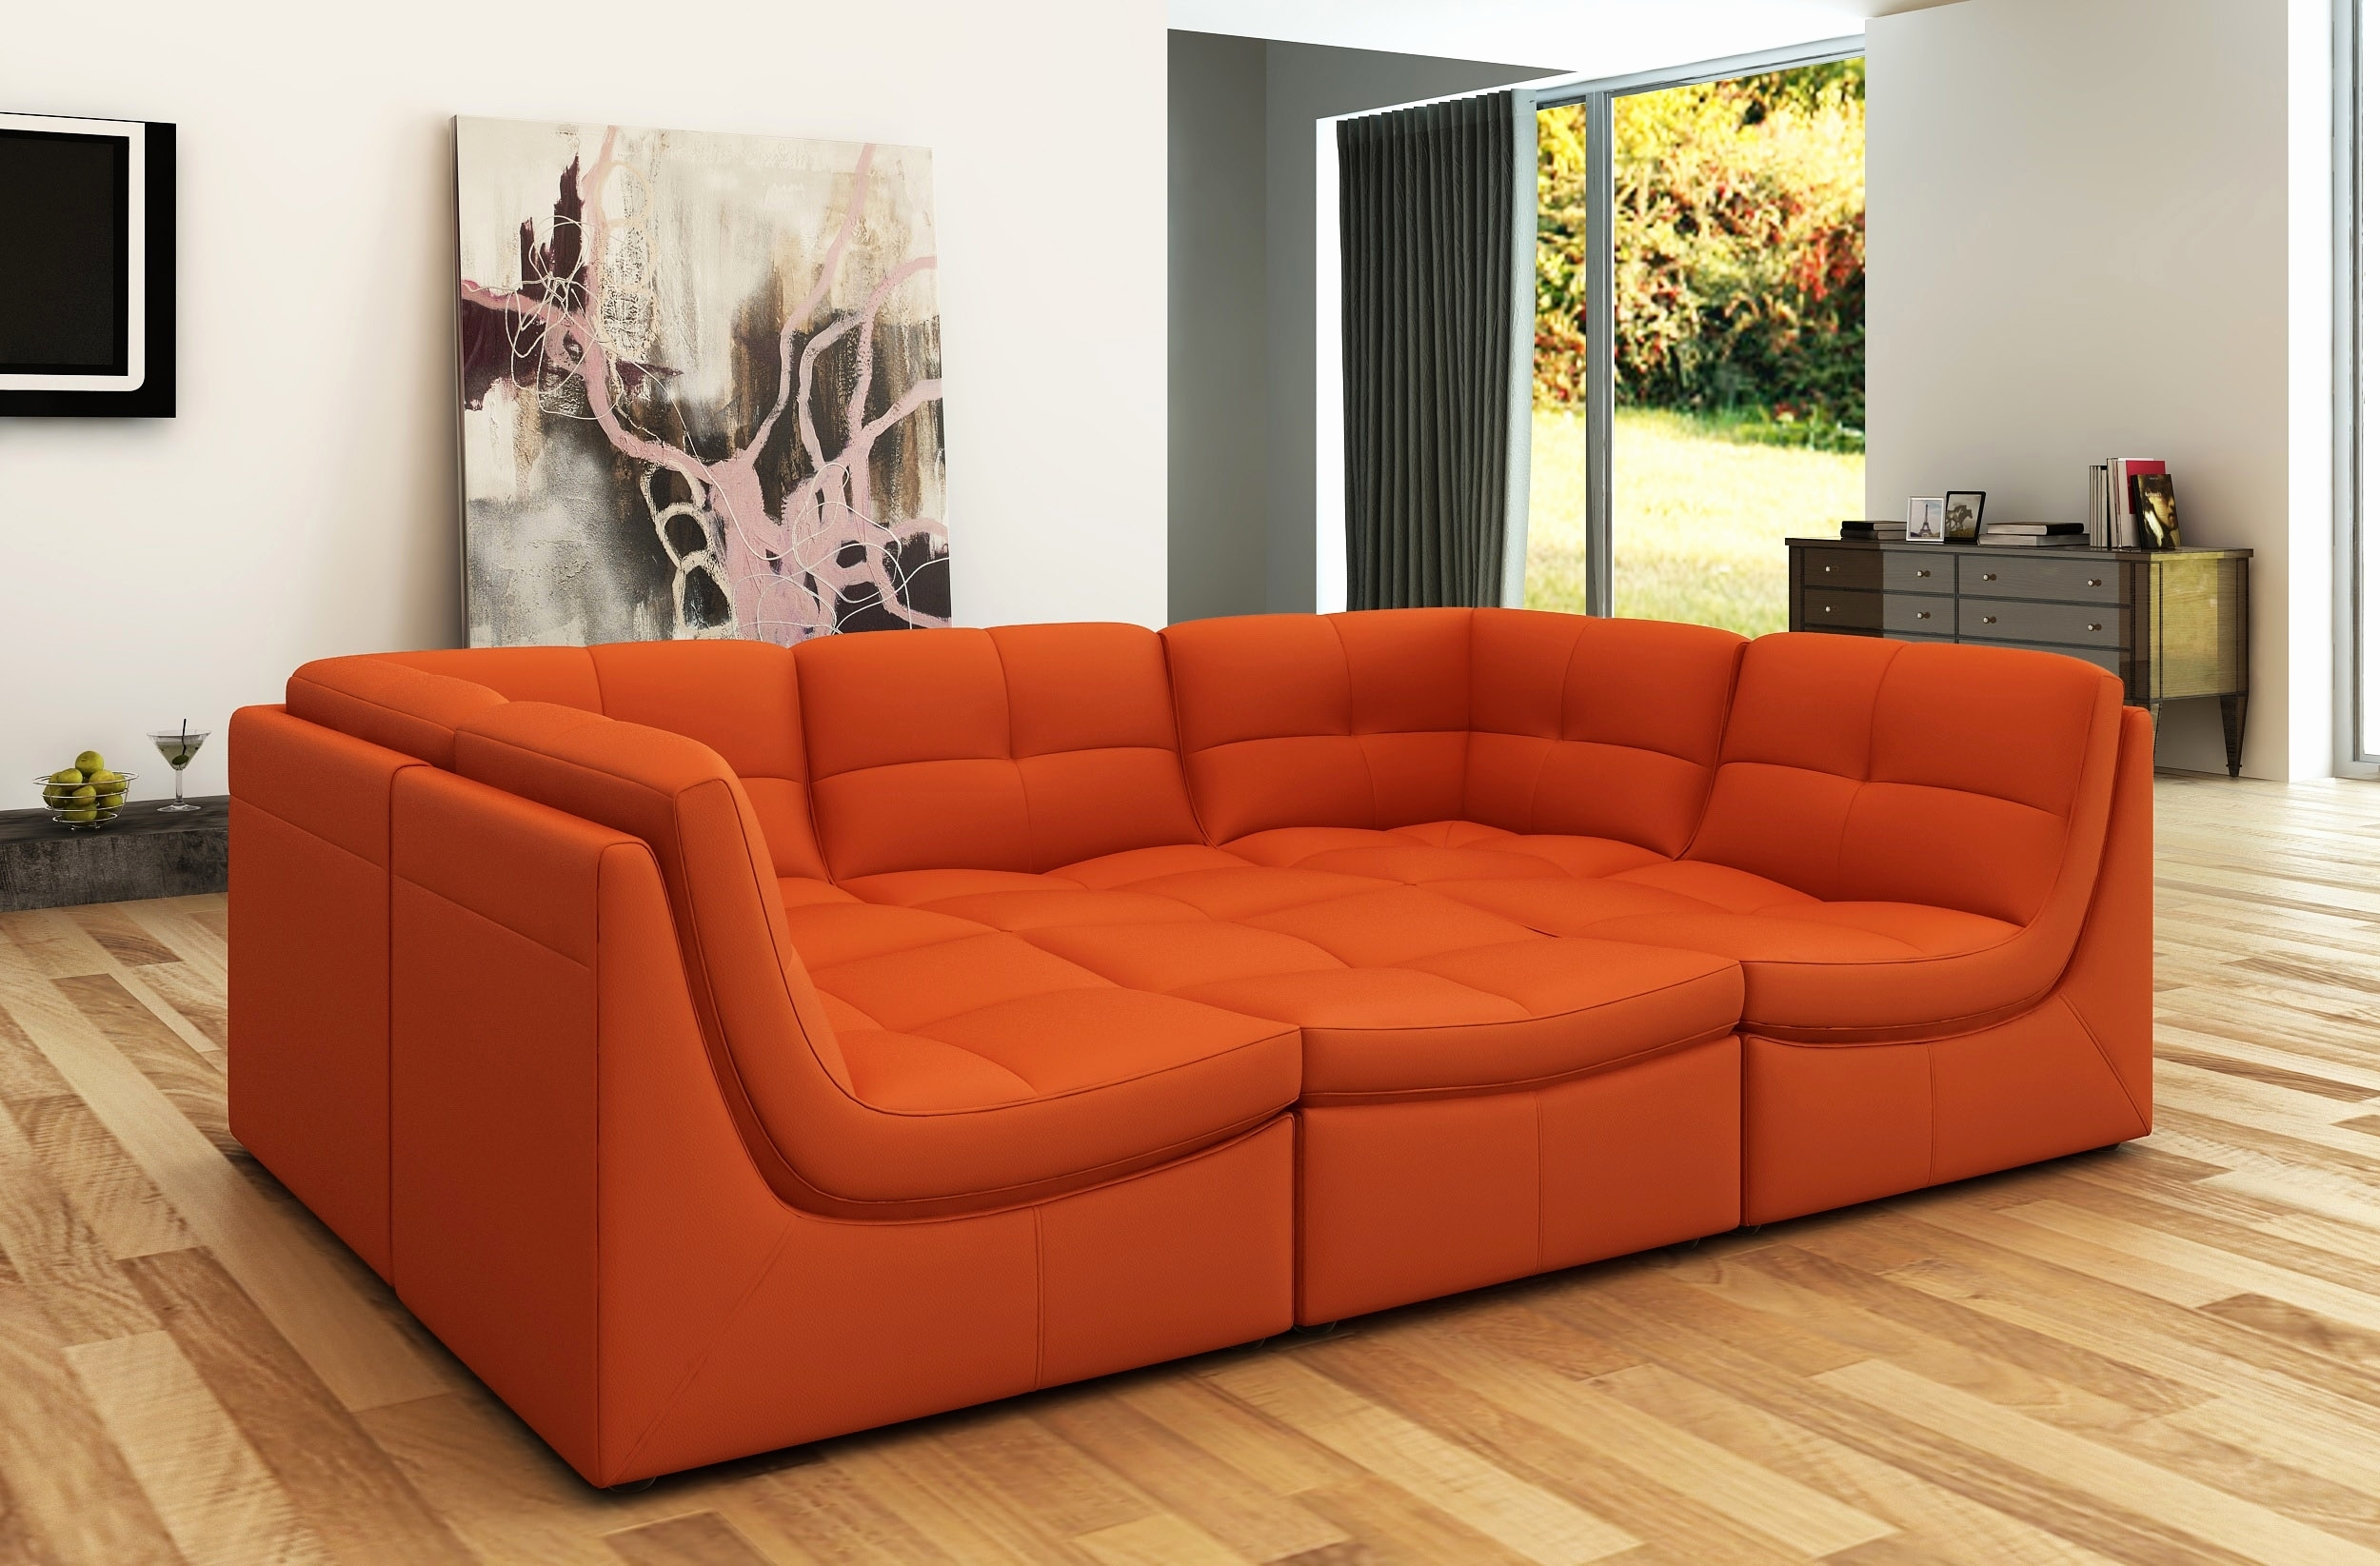 Best Leather Modular Couch 2018 – Couches And Sofas Ideas Within Des Moines Ia Sectional Sofas (View 5 of 10)